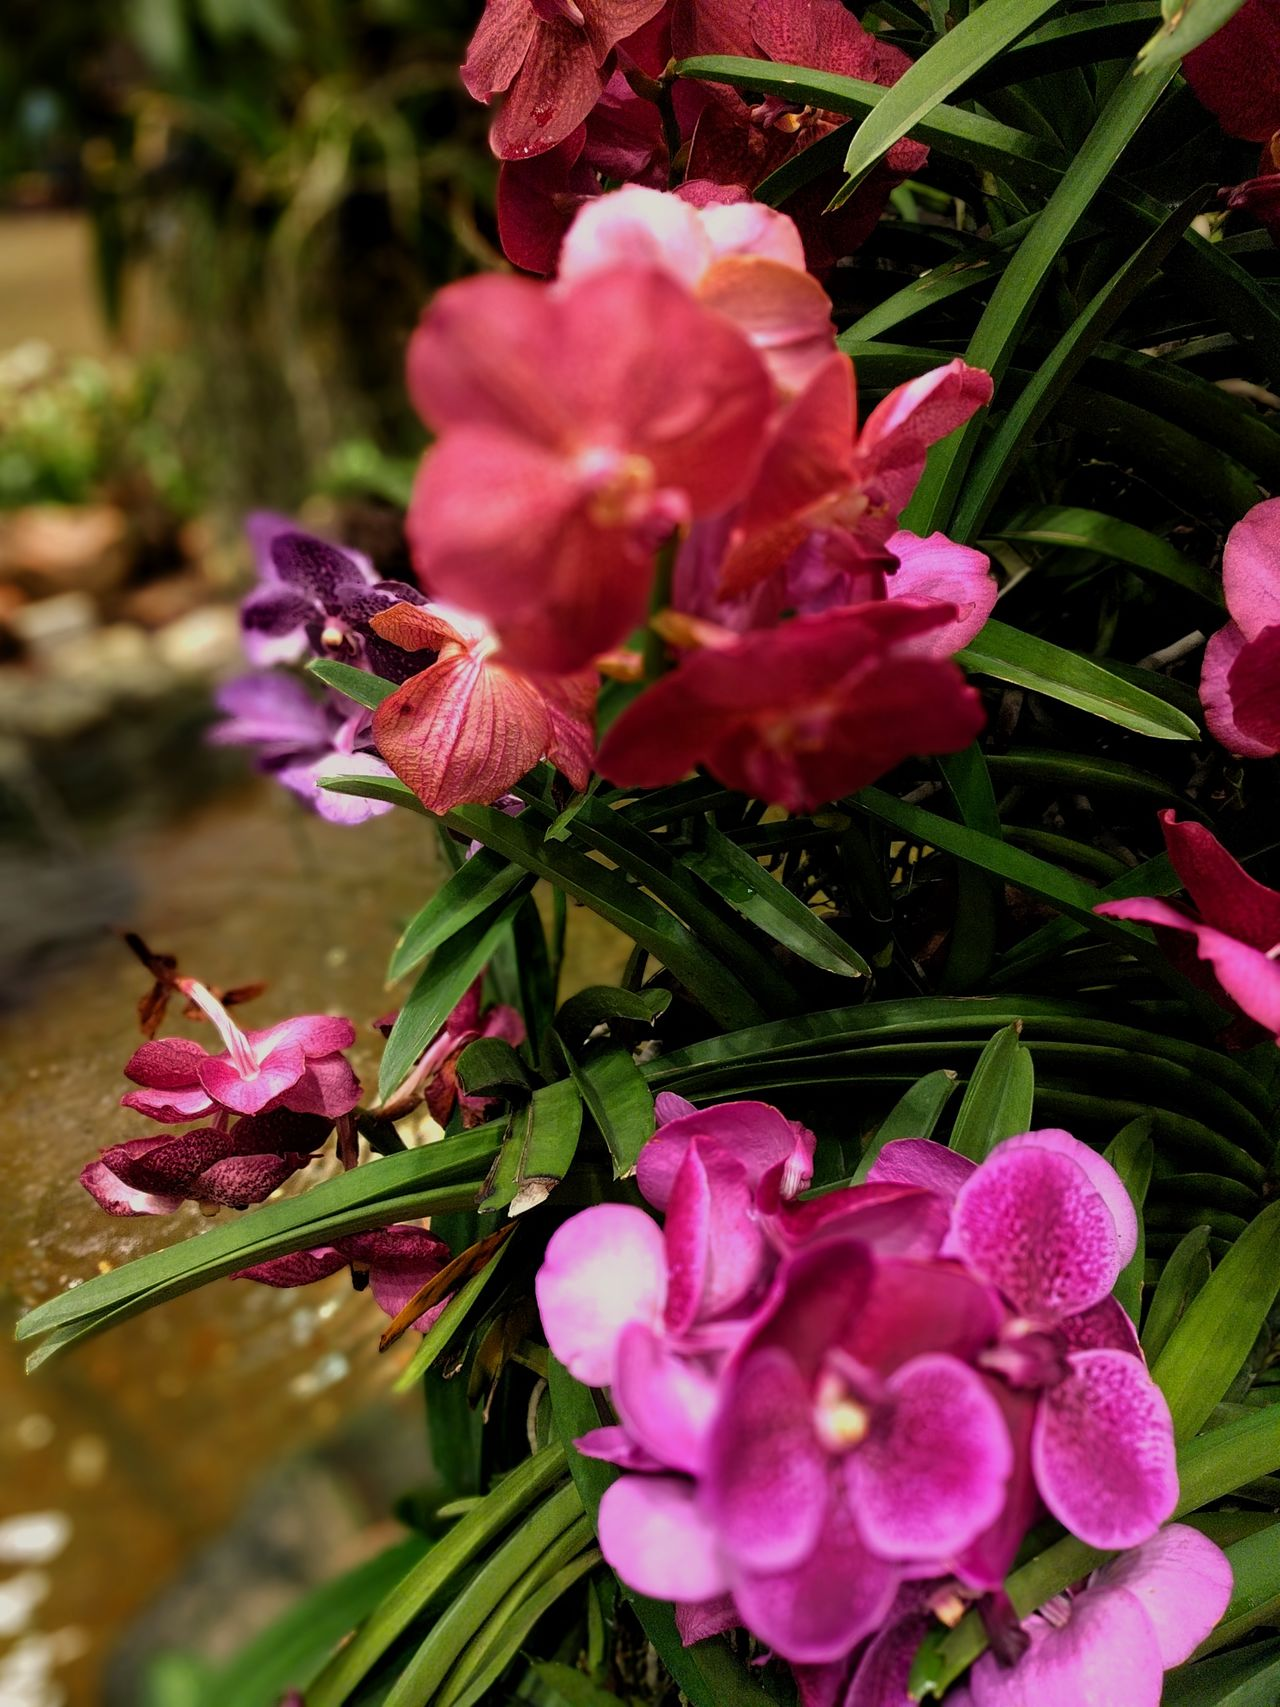 Flower Beauty In Nature Orchids Collection No People Plant Blossom Flower Head Close-up Nature Pink Color Freshness Growth Fragility